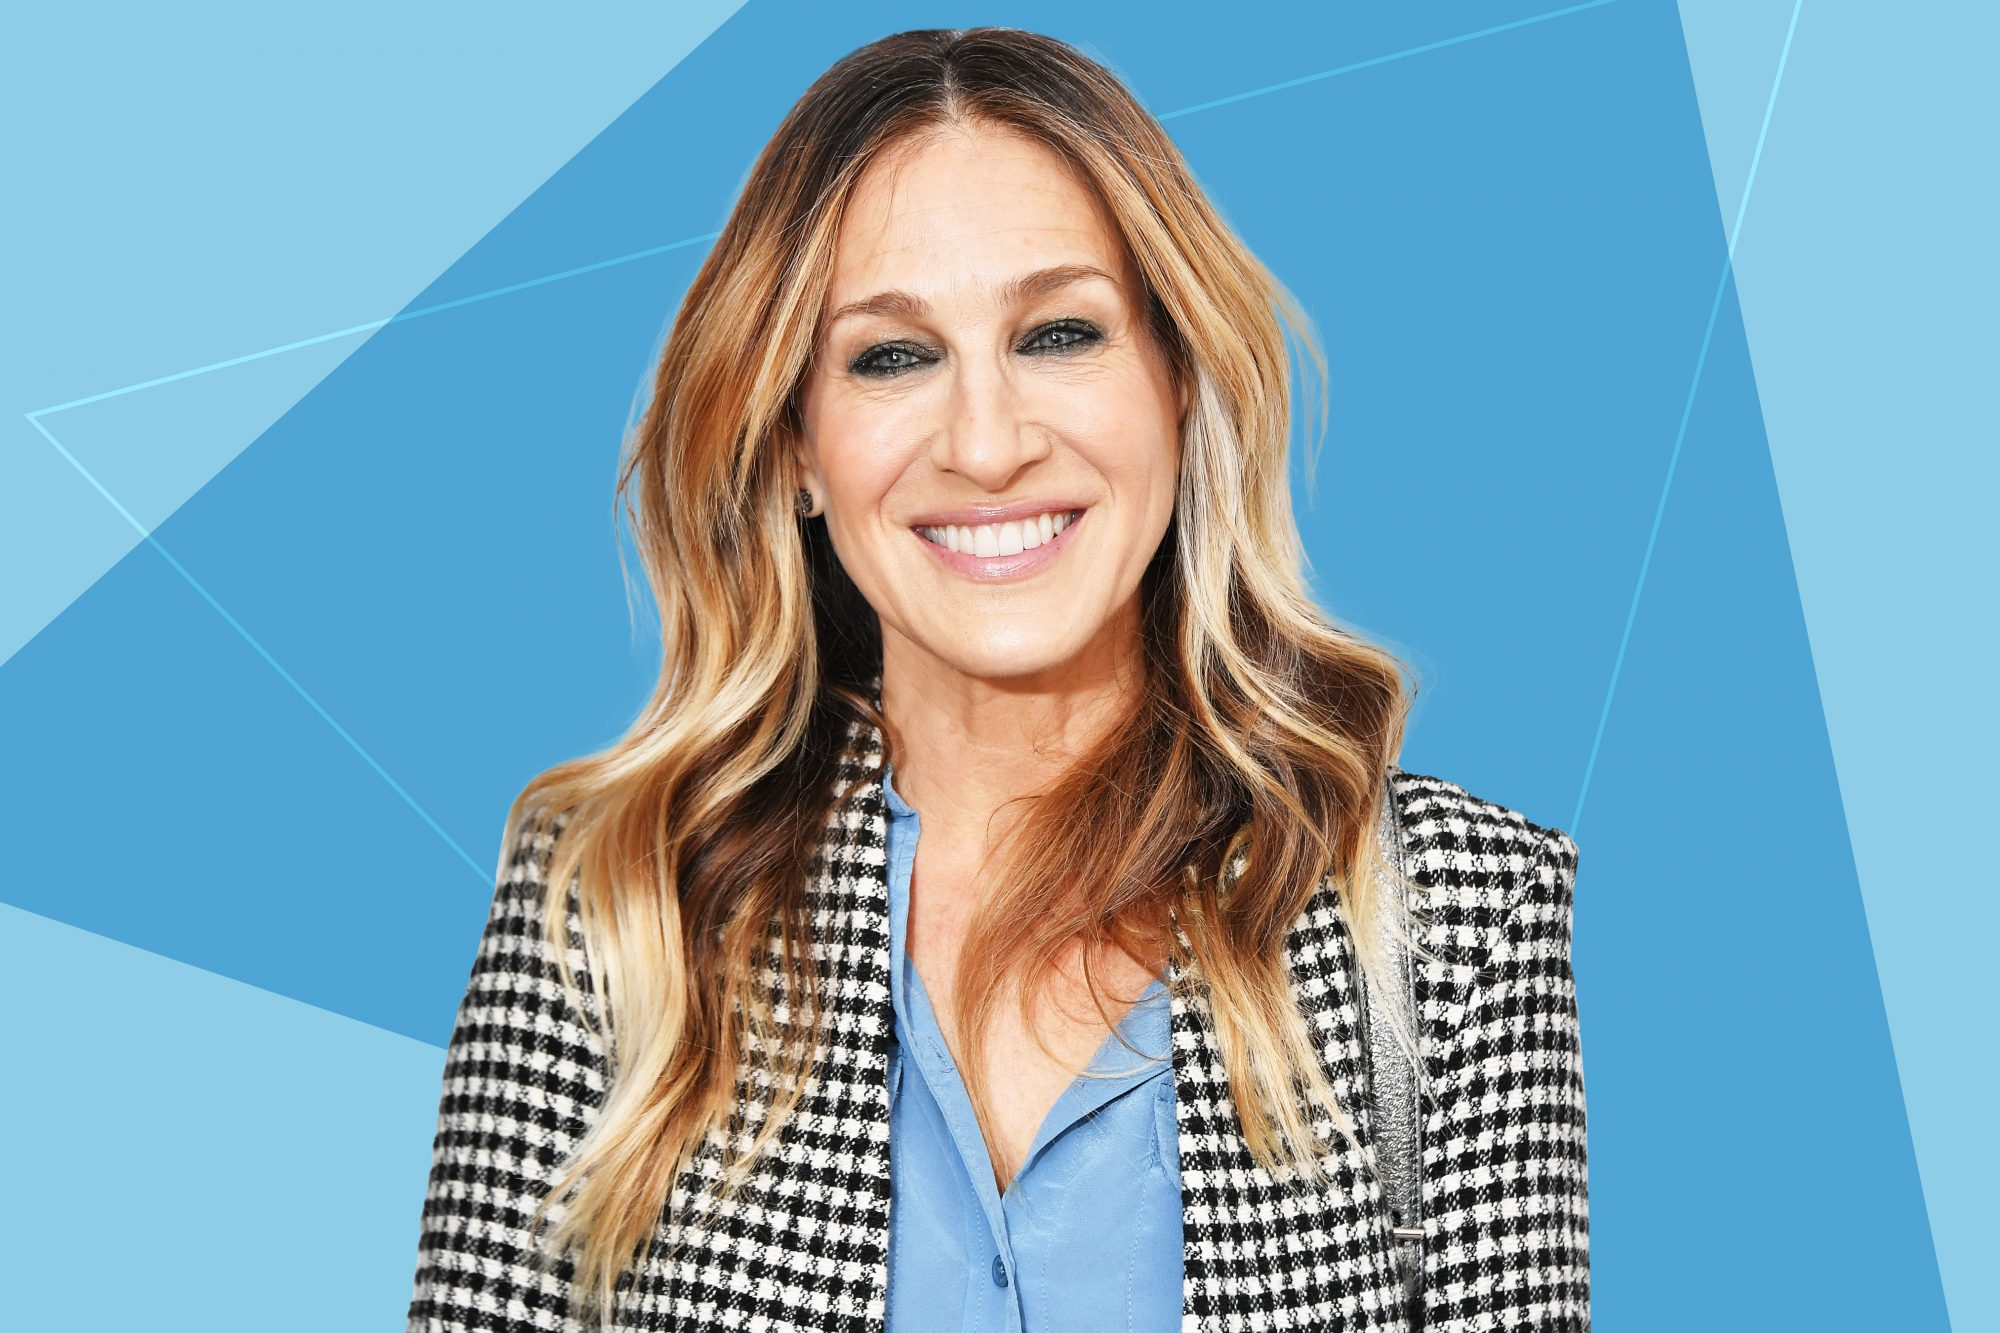 Sarah-Jessica-Parker-Has-Used-This-French-Moisturizer-Brand-for-More-Than-10-Years-GettyImages-957103542